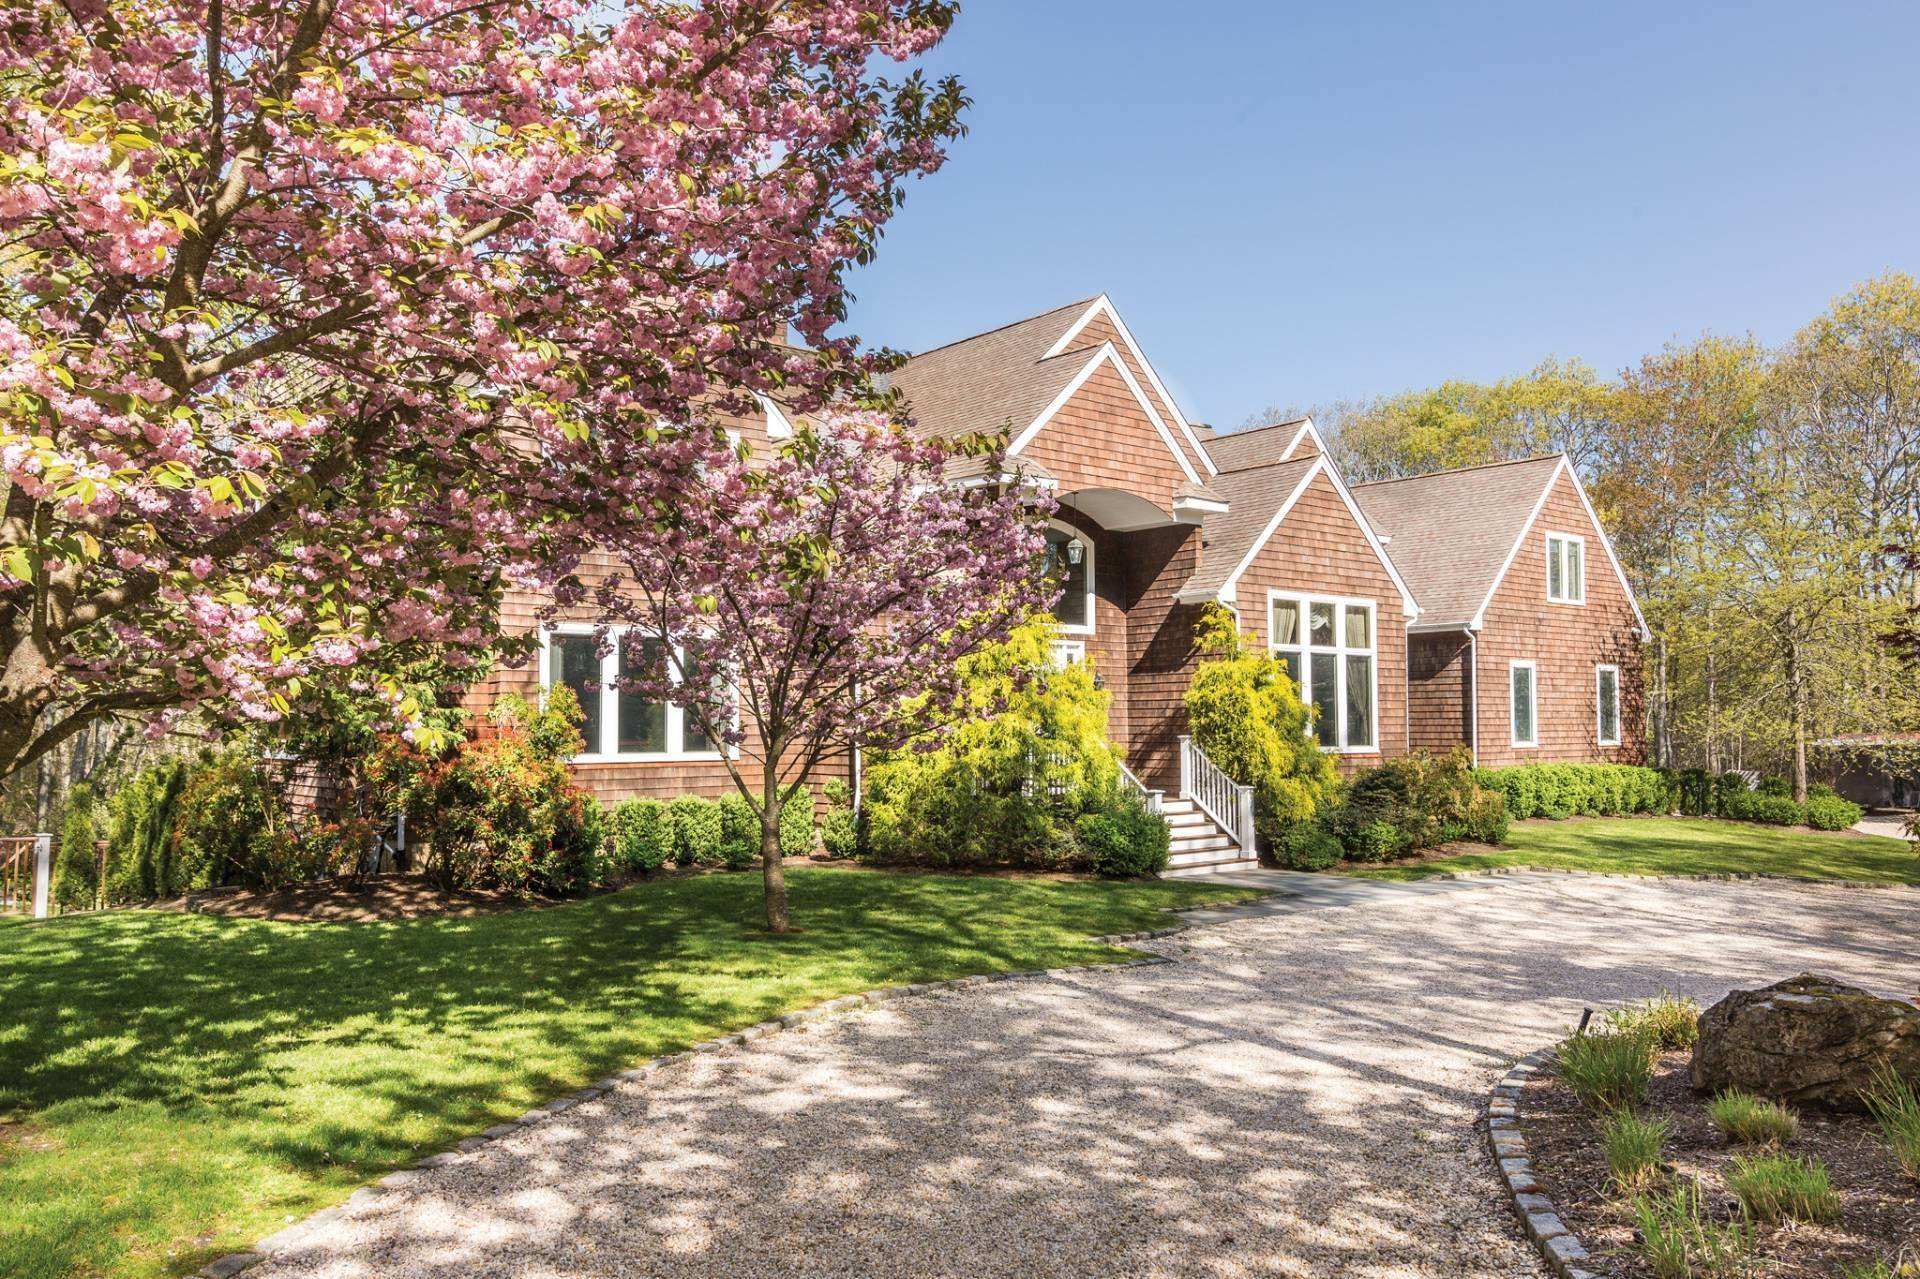 Single Family Homes at Fabulous Post Modern With Pool And Tennis Sag Harbor, Southampton Town, NY 11963